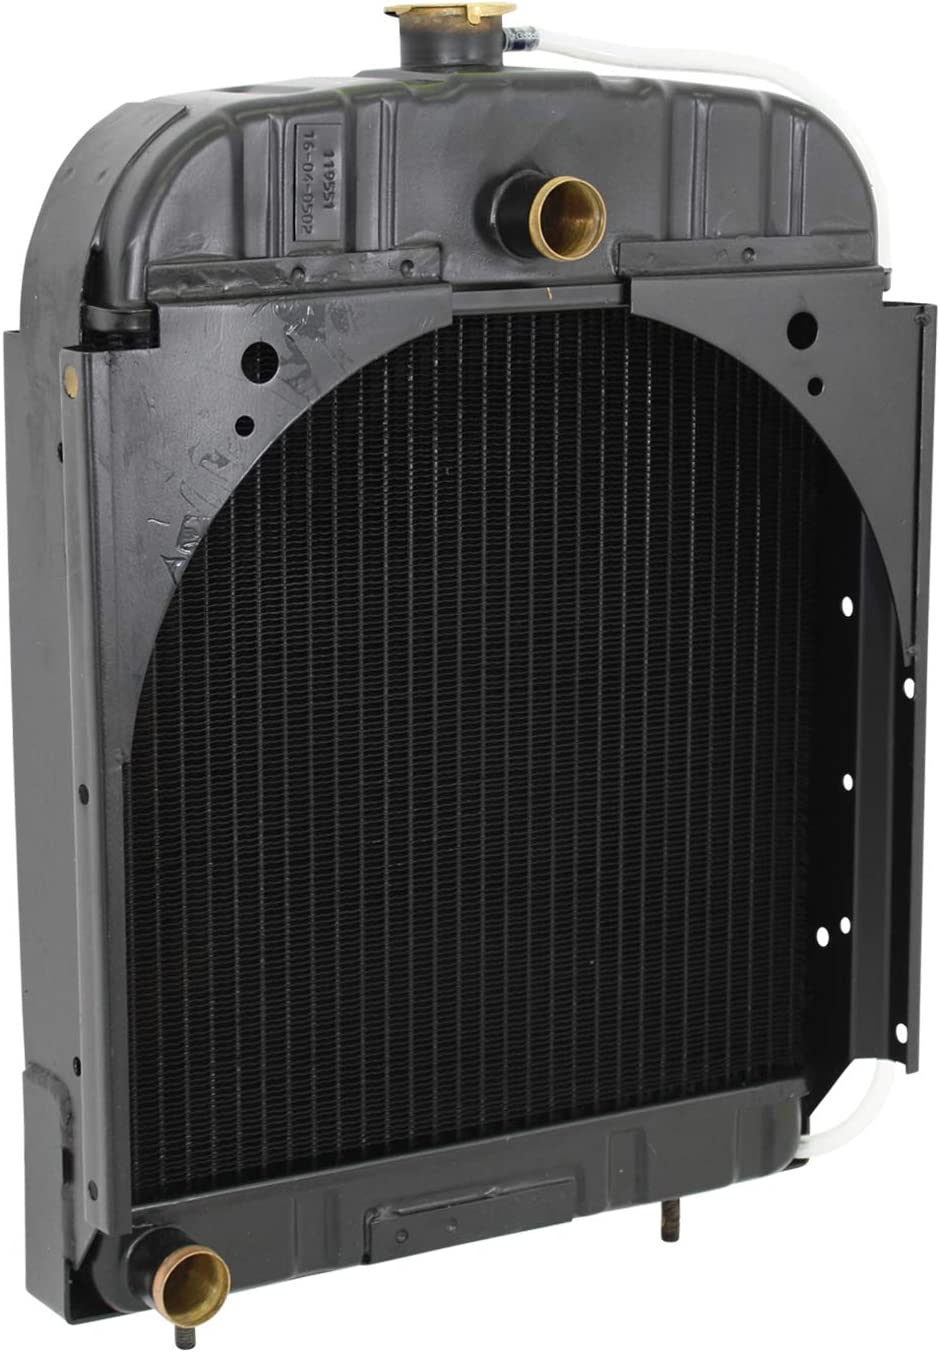 Hobart radiators for DISHWASHER ECOMAX ECOMAX 402 for Tank 2000w 502